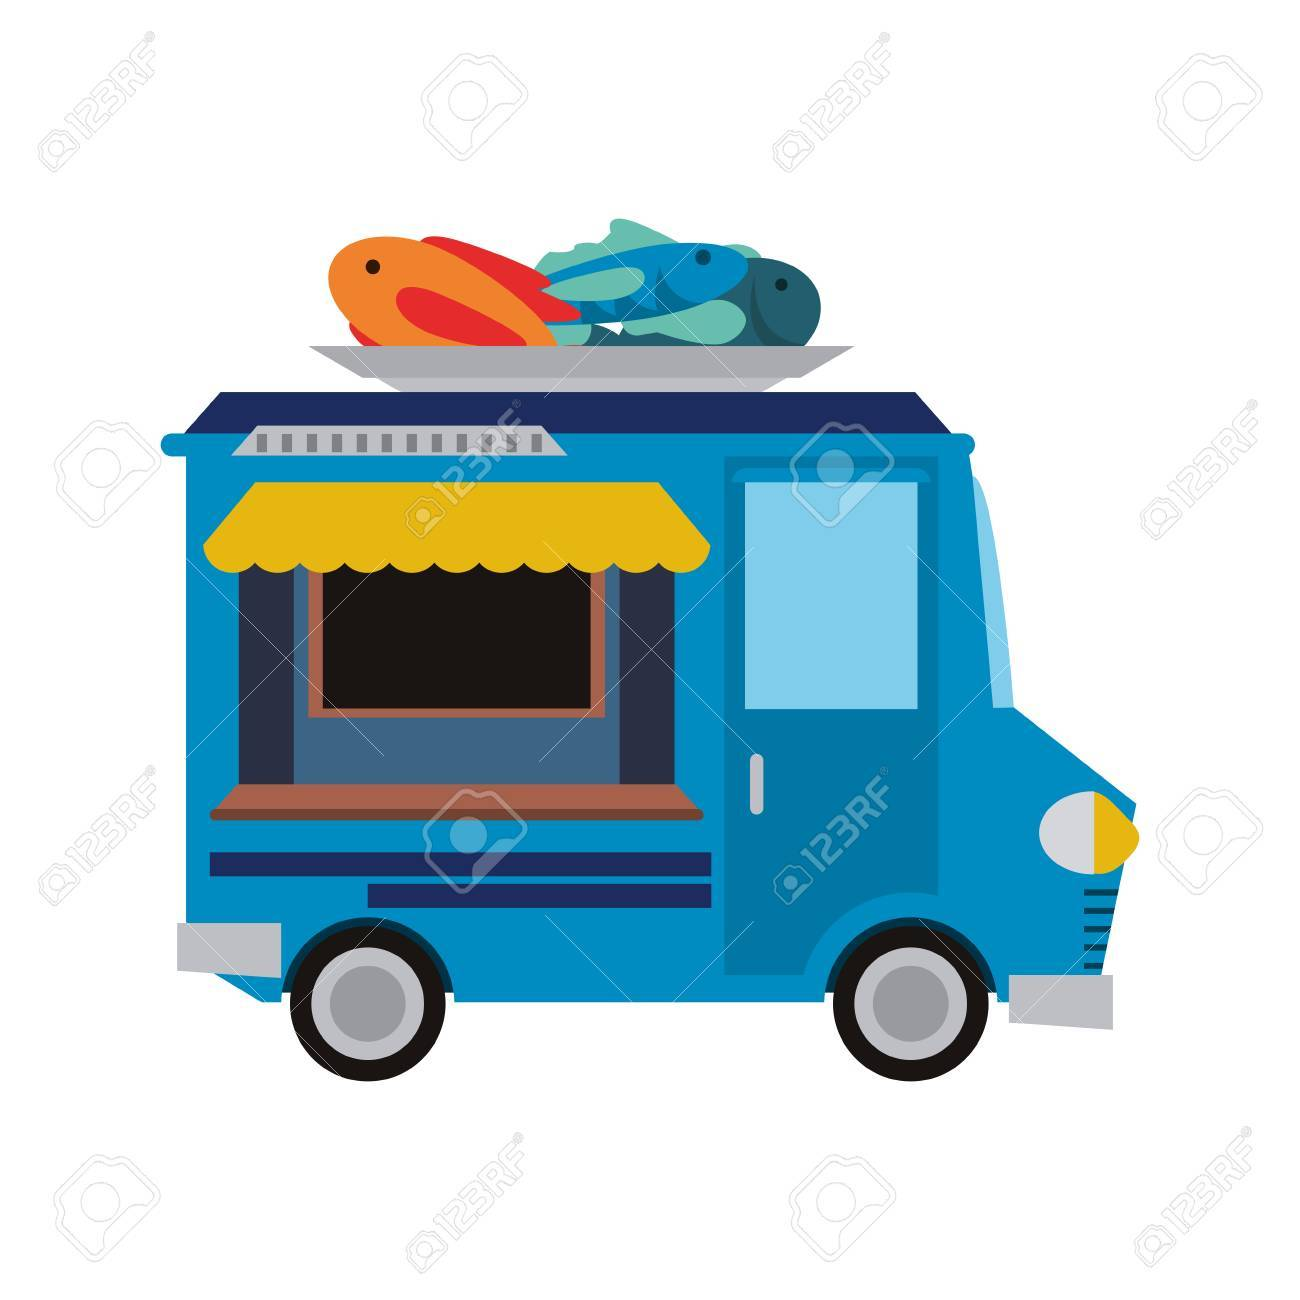 Food Truck Icon Image Colorful Cartoon Illustration Design Stock Vector